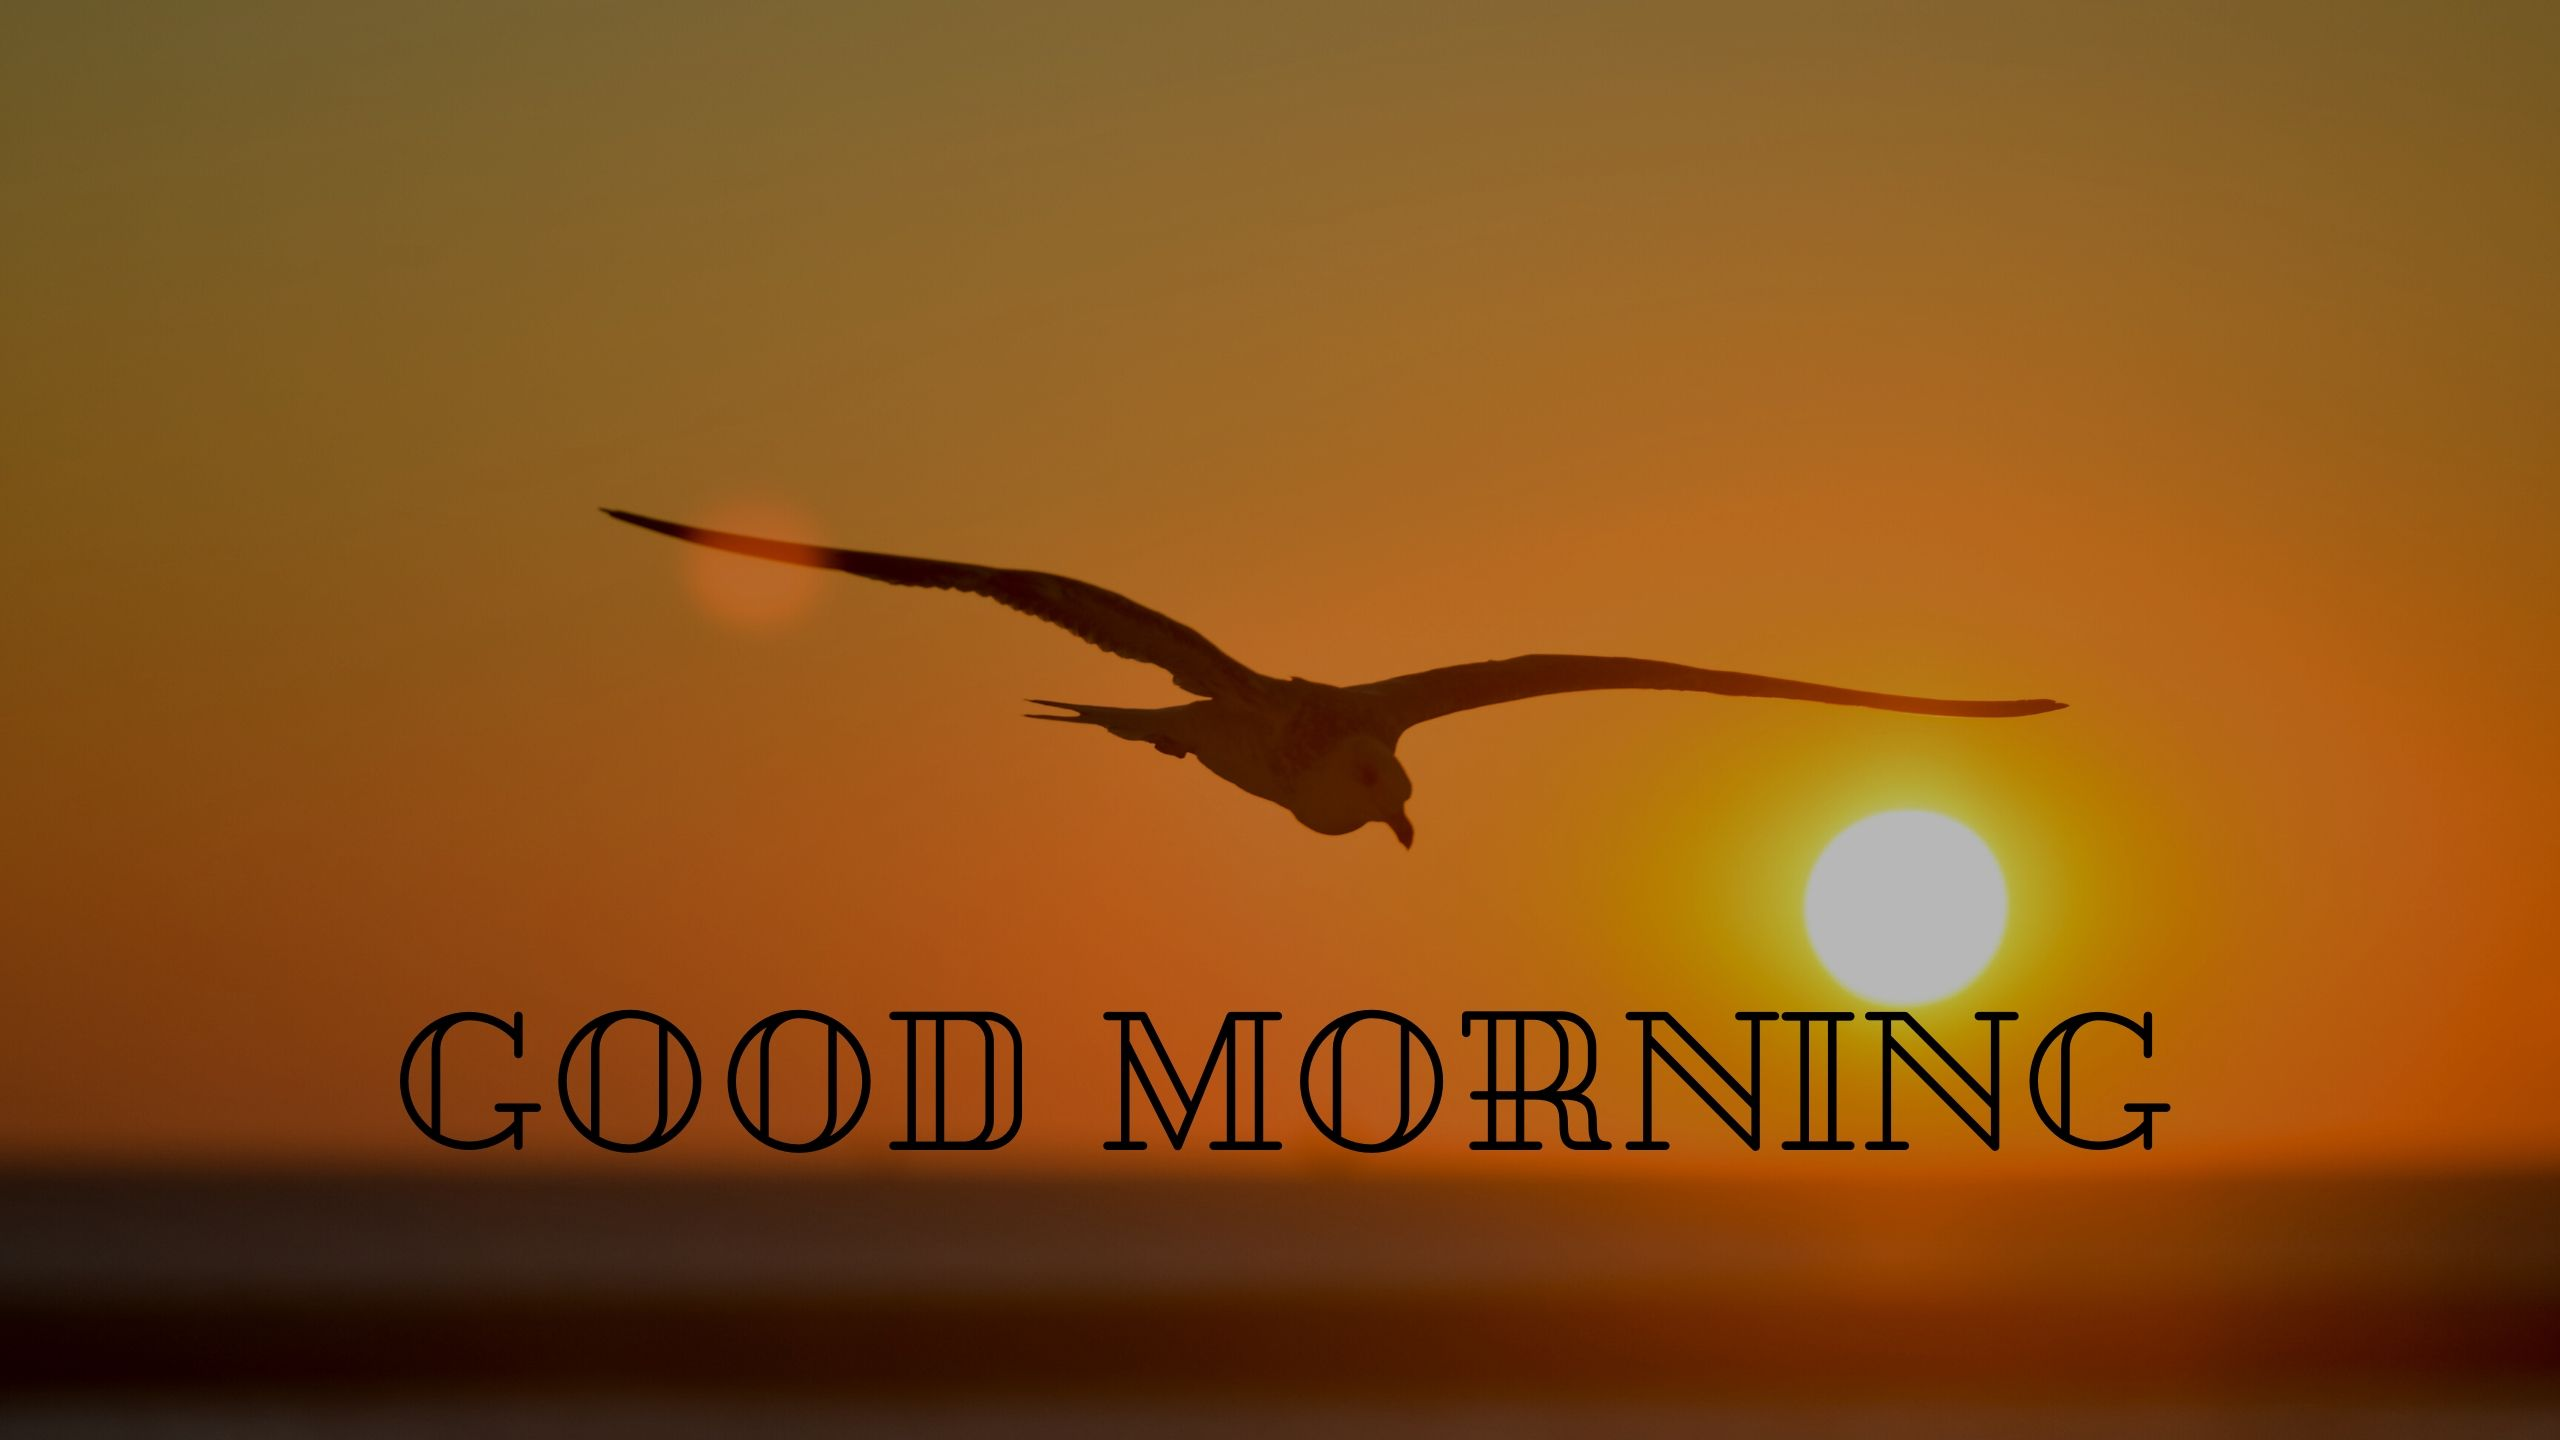 Good Morning Bird Flying Sun Rising Image full HD free download.